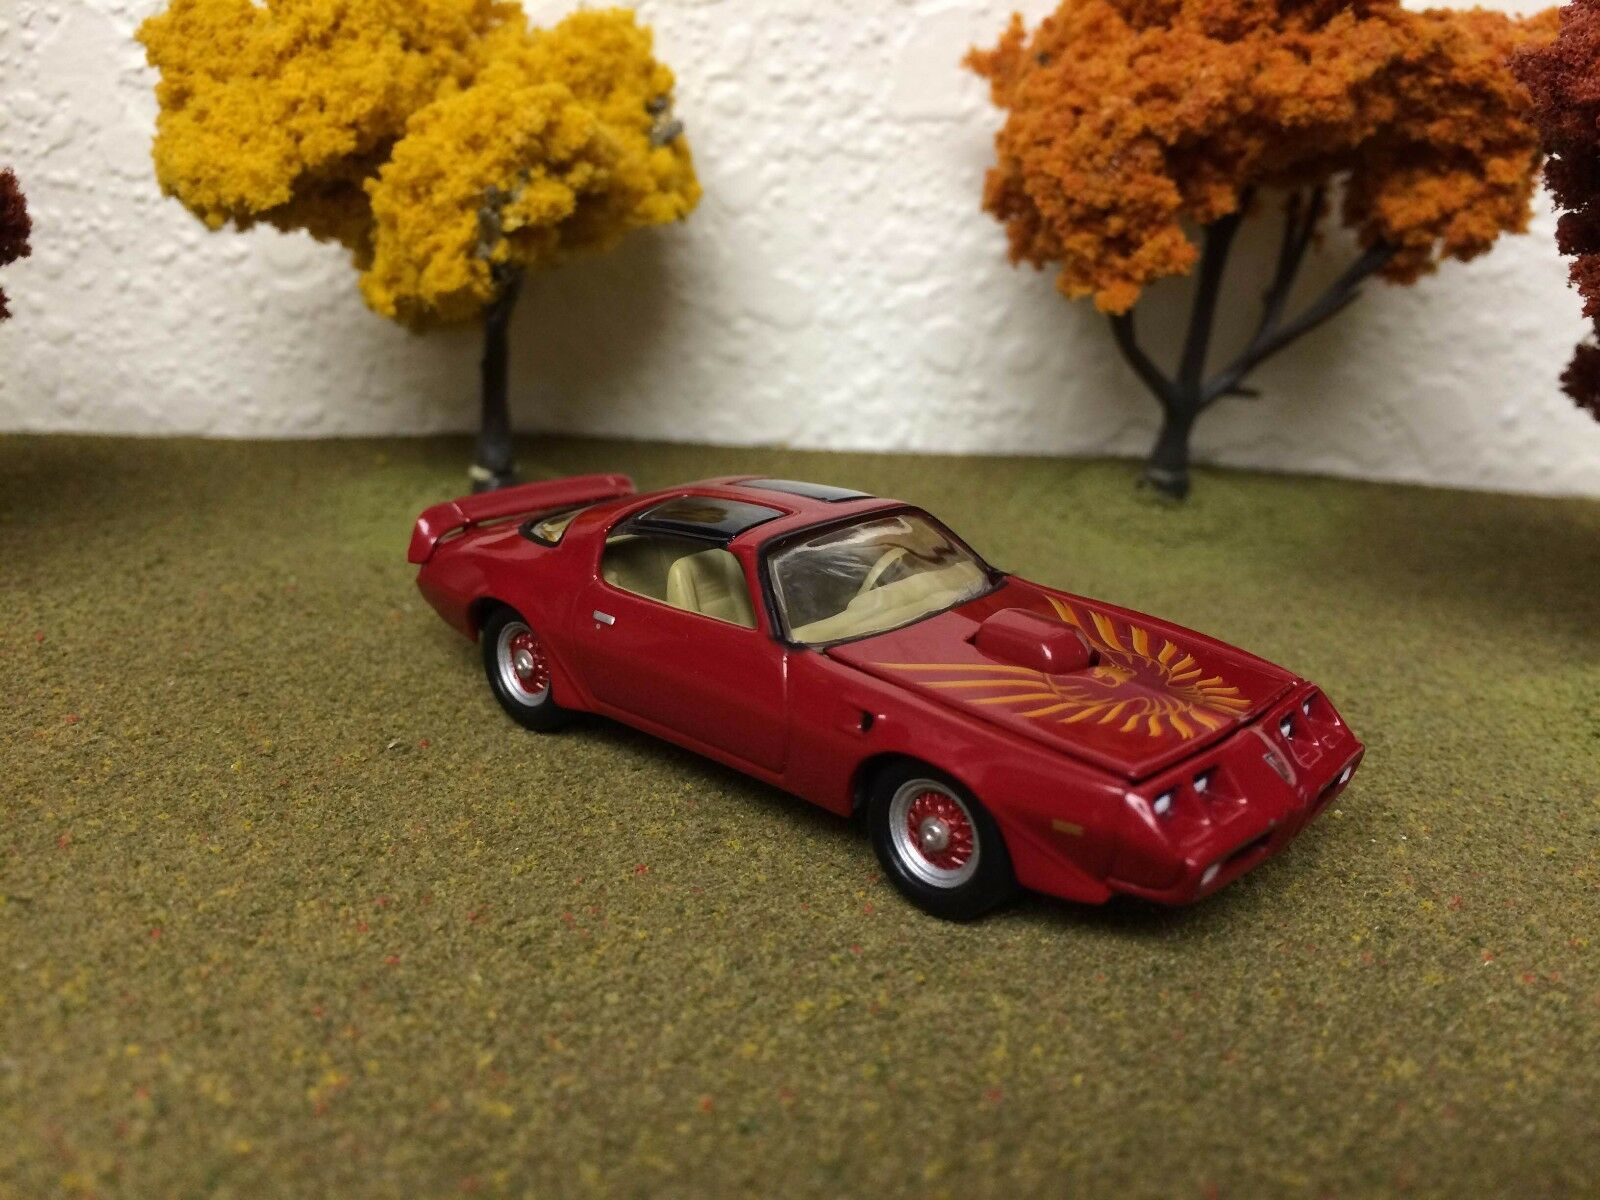 1980 PONTIAC TRANS TRANS TRANS AM FIREBIRD RED 1 64 SCALE LIMITED EDITION REAL RUBBER 944114